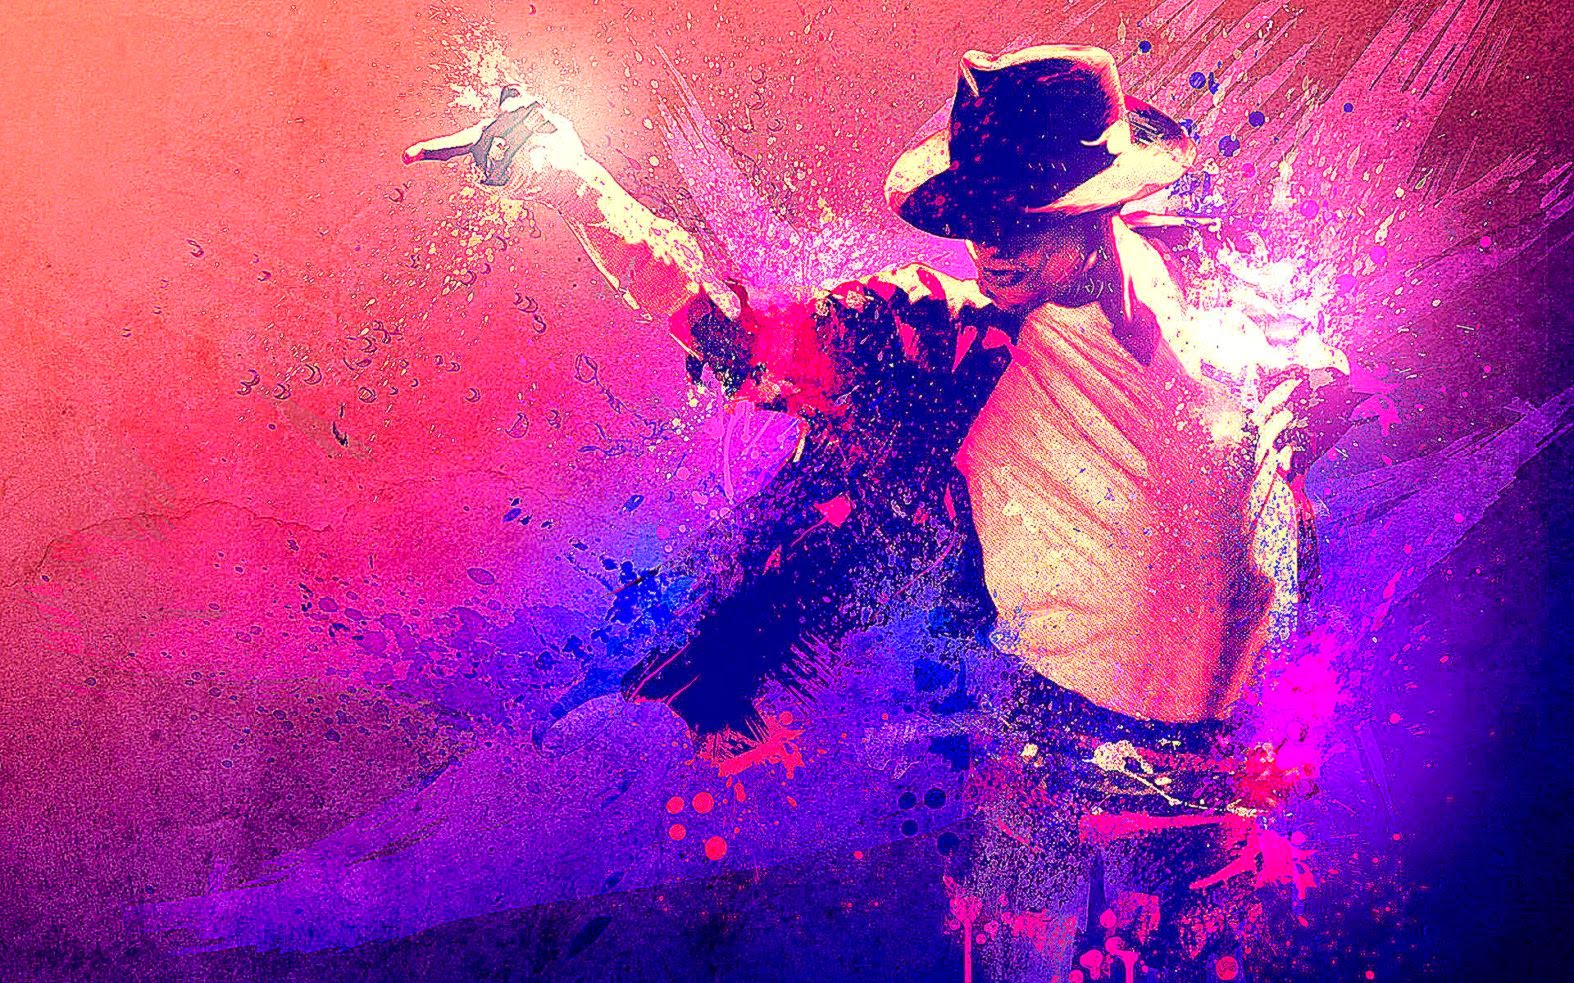 Michael Jackson Wallpapers   Full HD wallpaper search